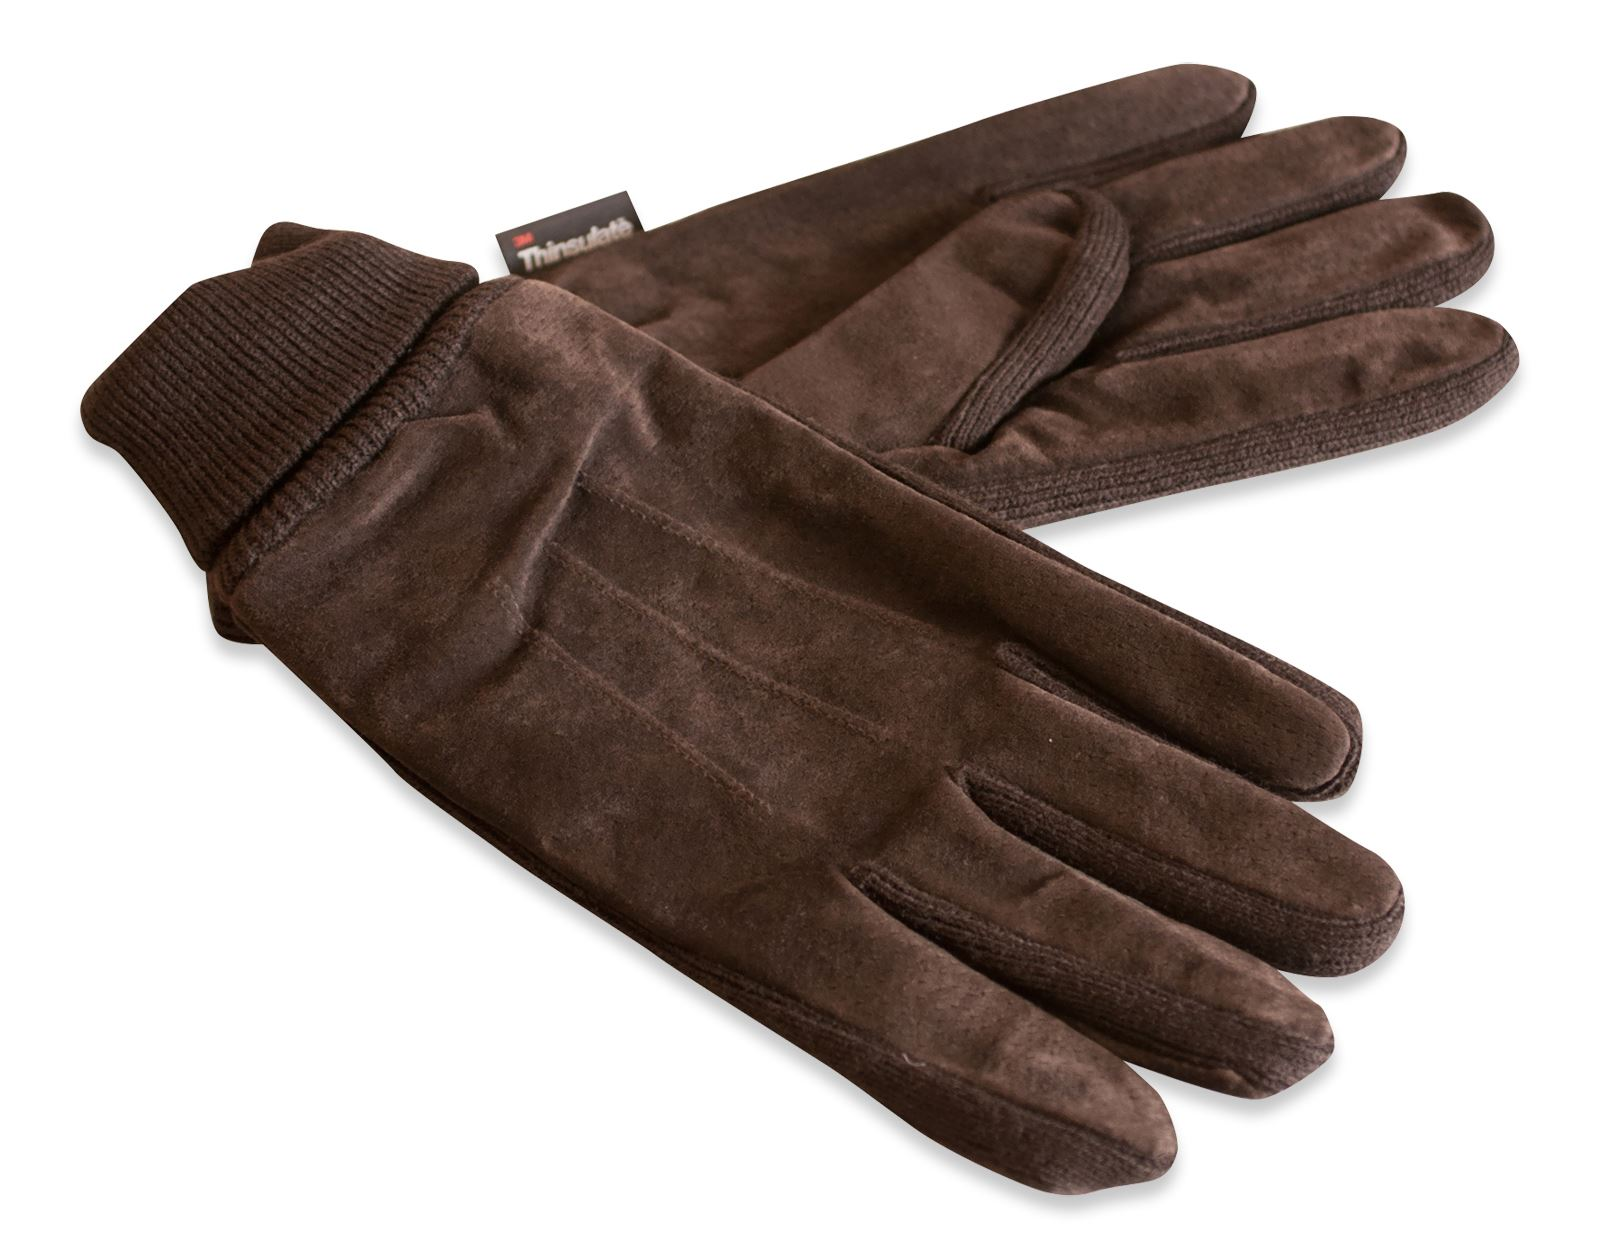 Womens leather gloves thinsulate lining -  Picture 10 Of 16